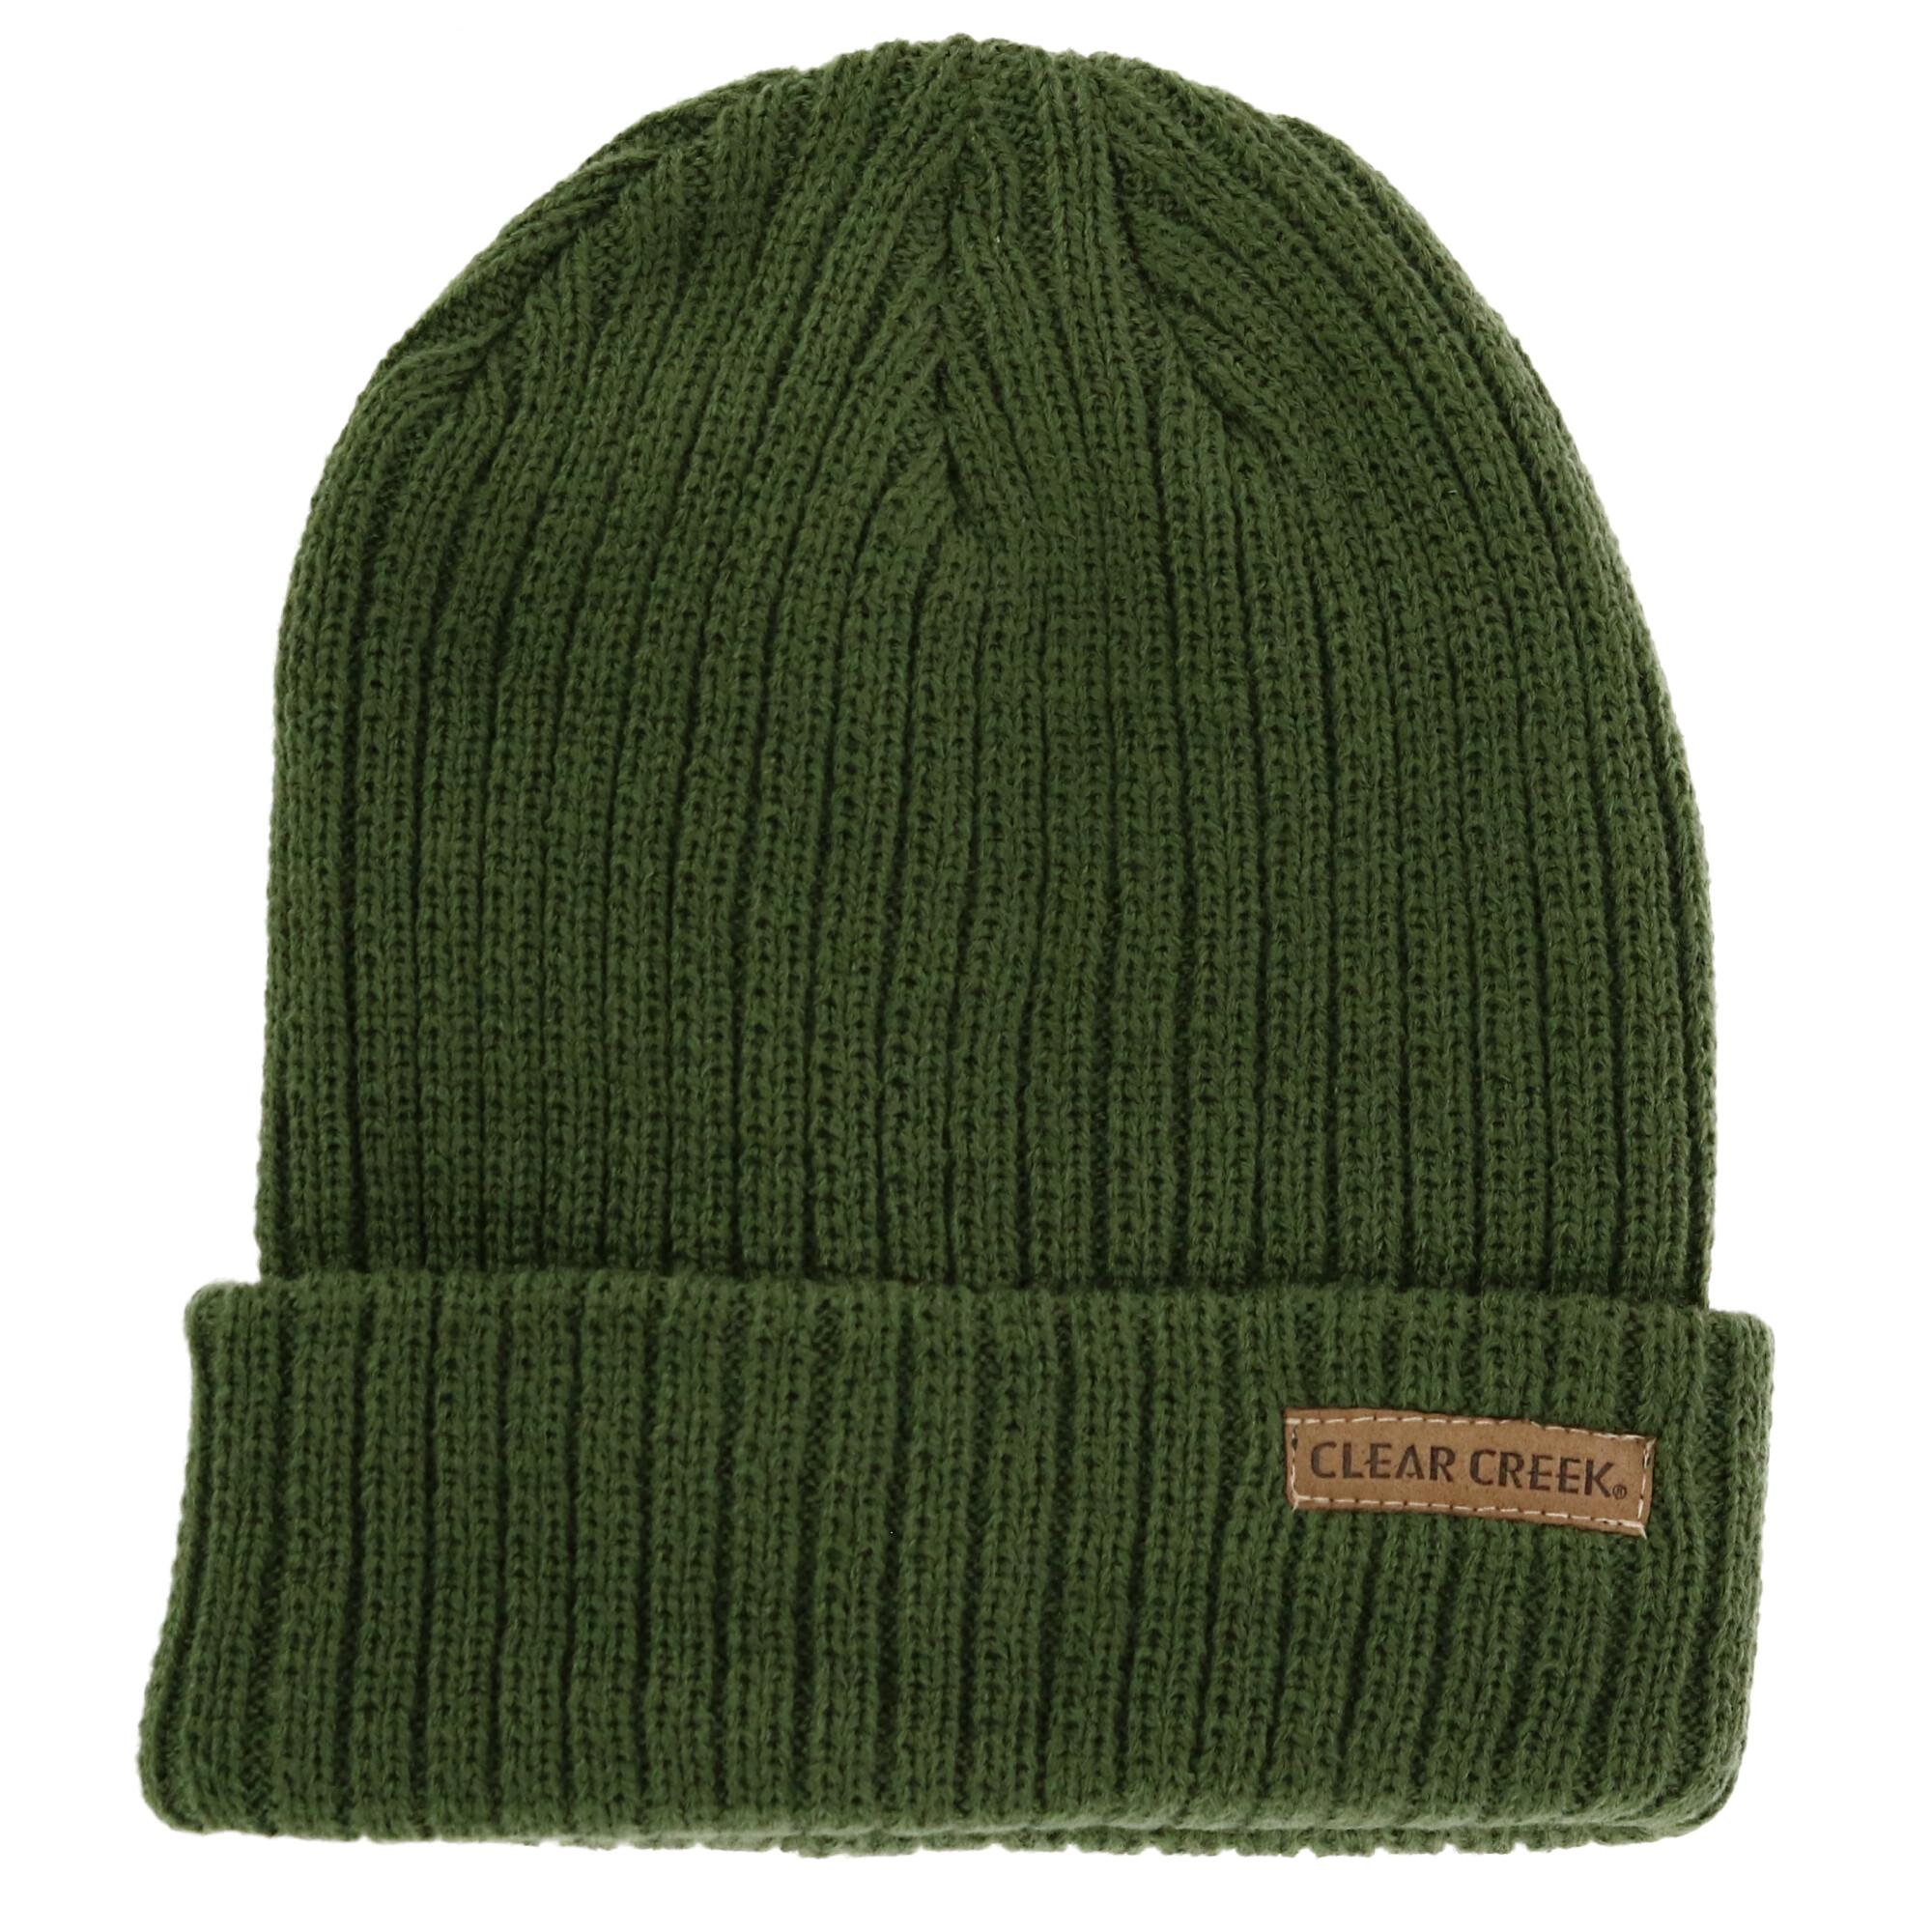 Clear Creek Men's Ribbed Knit Cuff Cap - Green one size